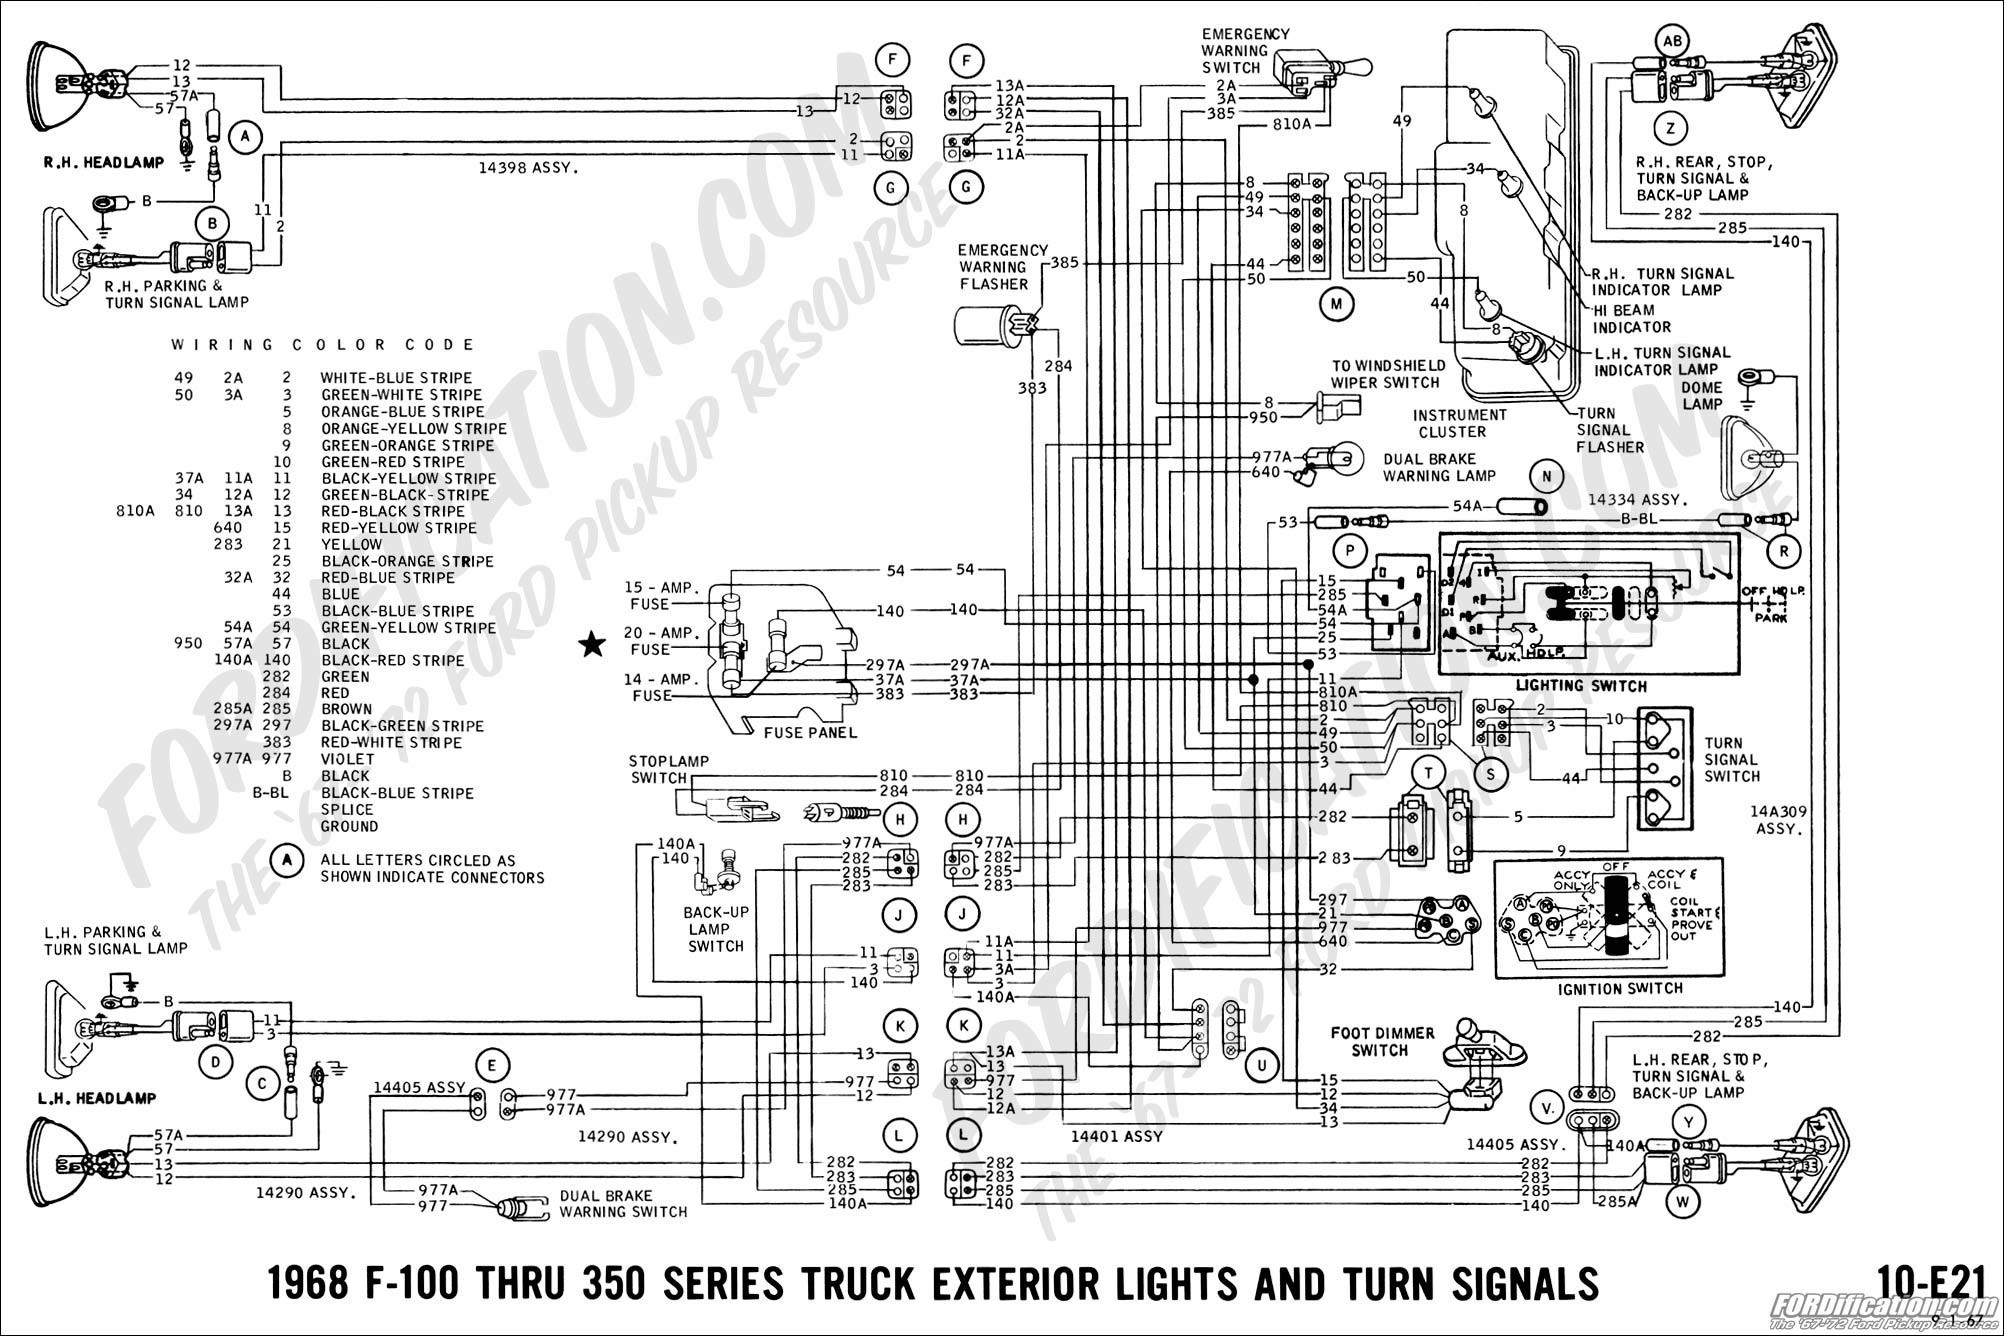 Electrical Engineering Diagrams ford F150 Wiring Diagrams Best Volvo S40 2 0d Engine Diagram Free Of Electrical Engineering Diagrams